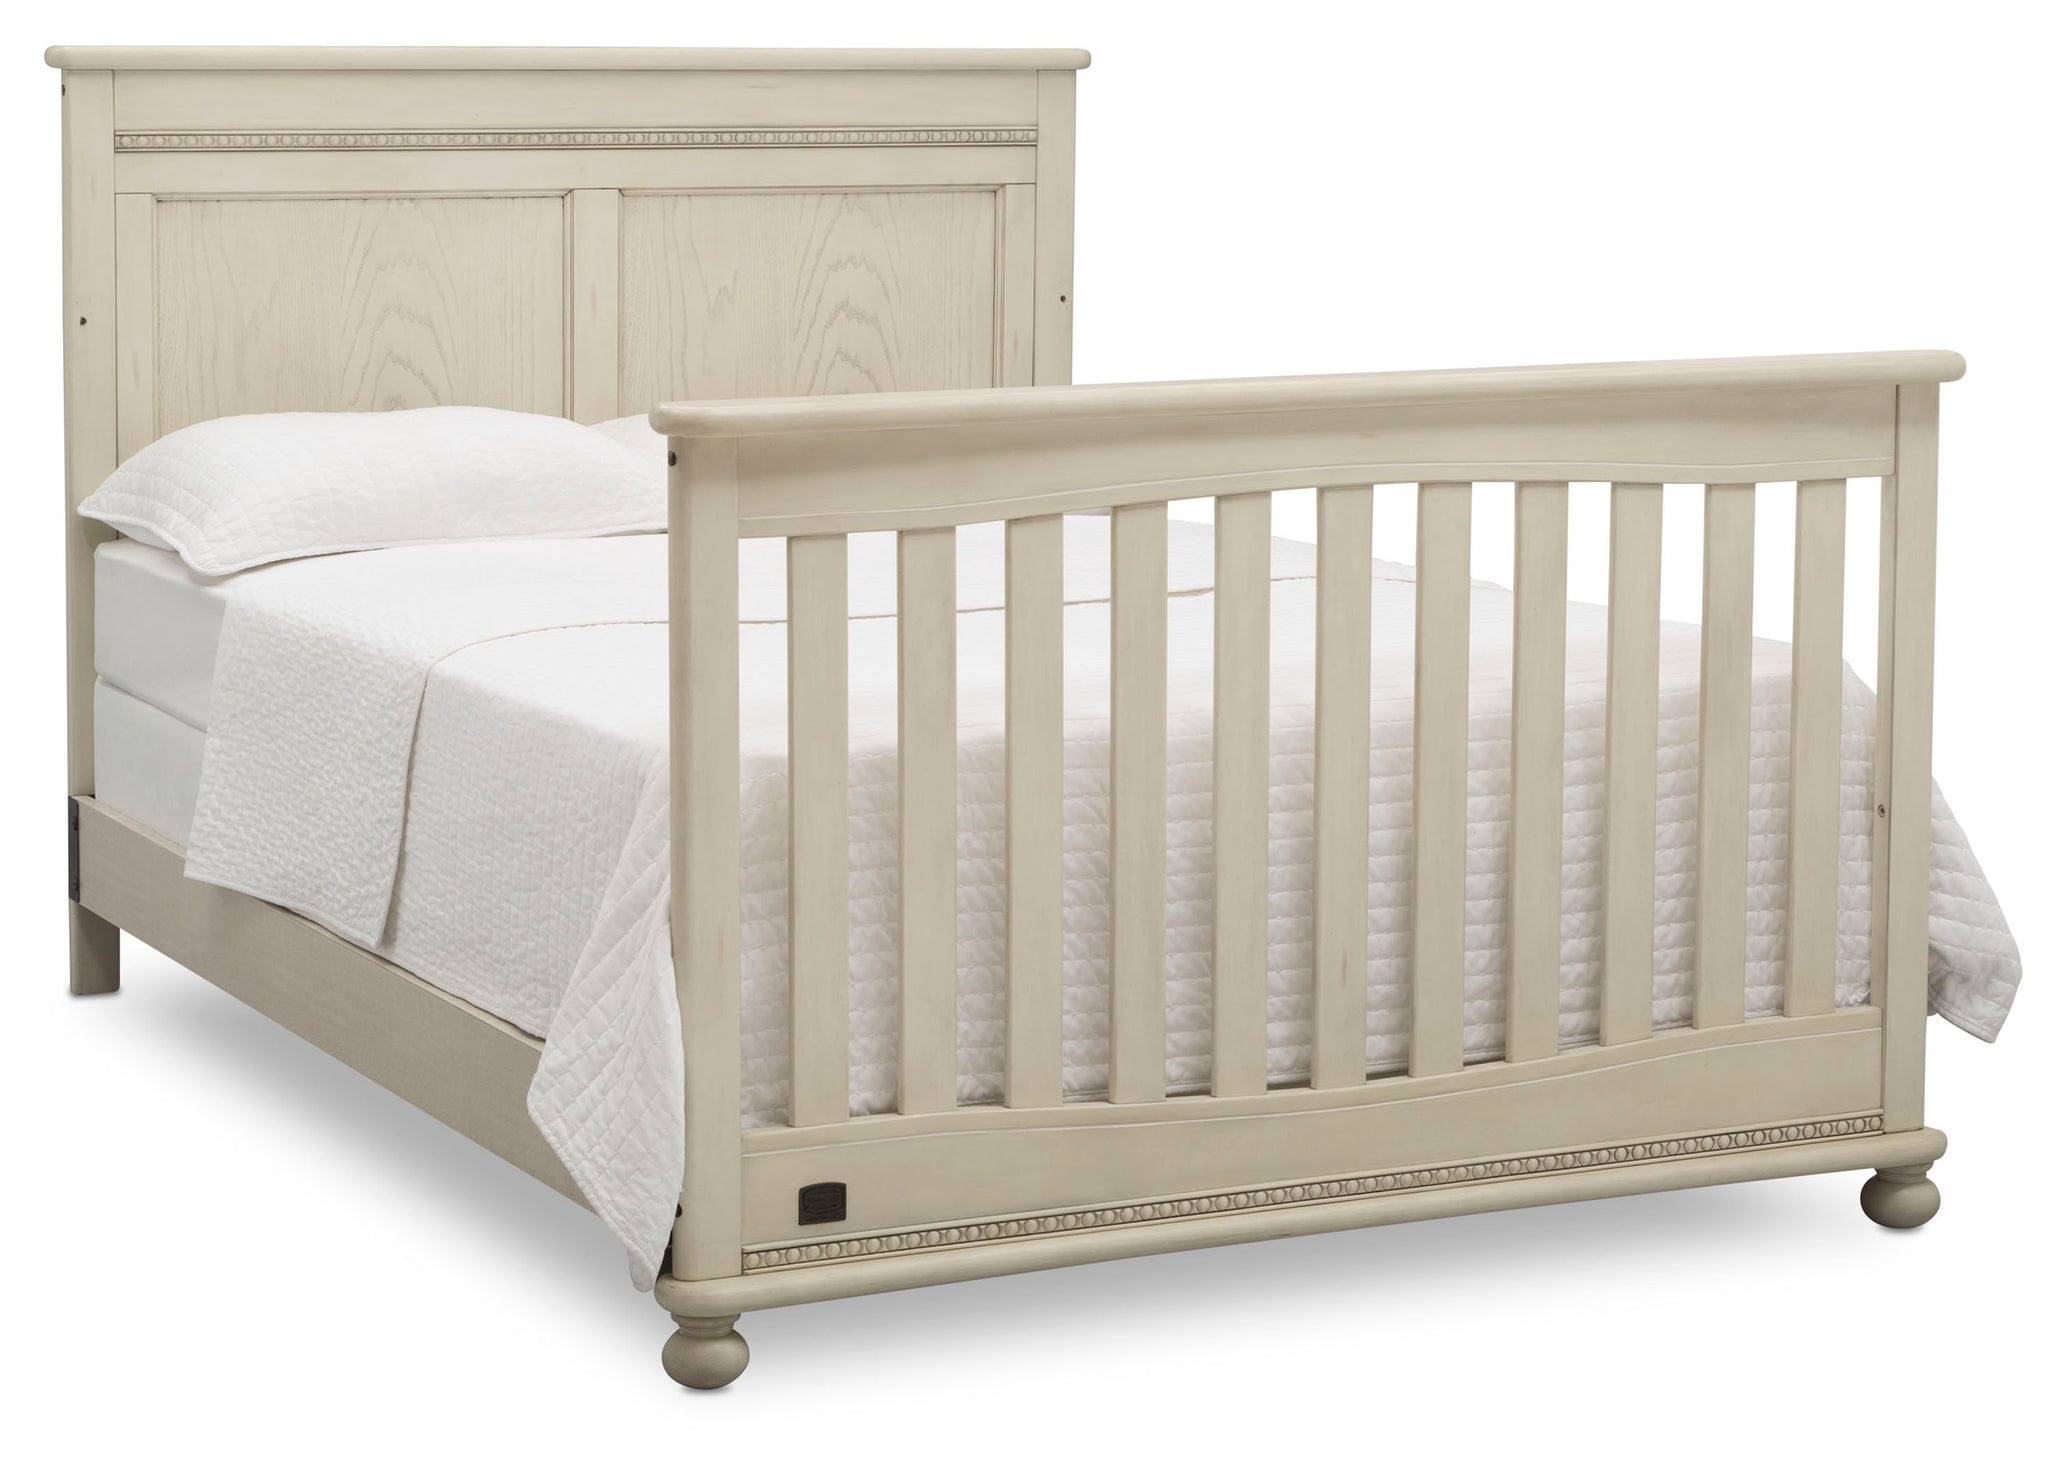 Delta Children Antique White (122) Fontana 4-in-1 Convertible Crib (W337350) Full Bed Conversion, a6a